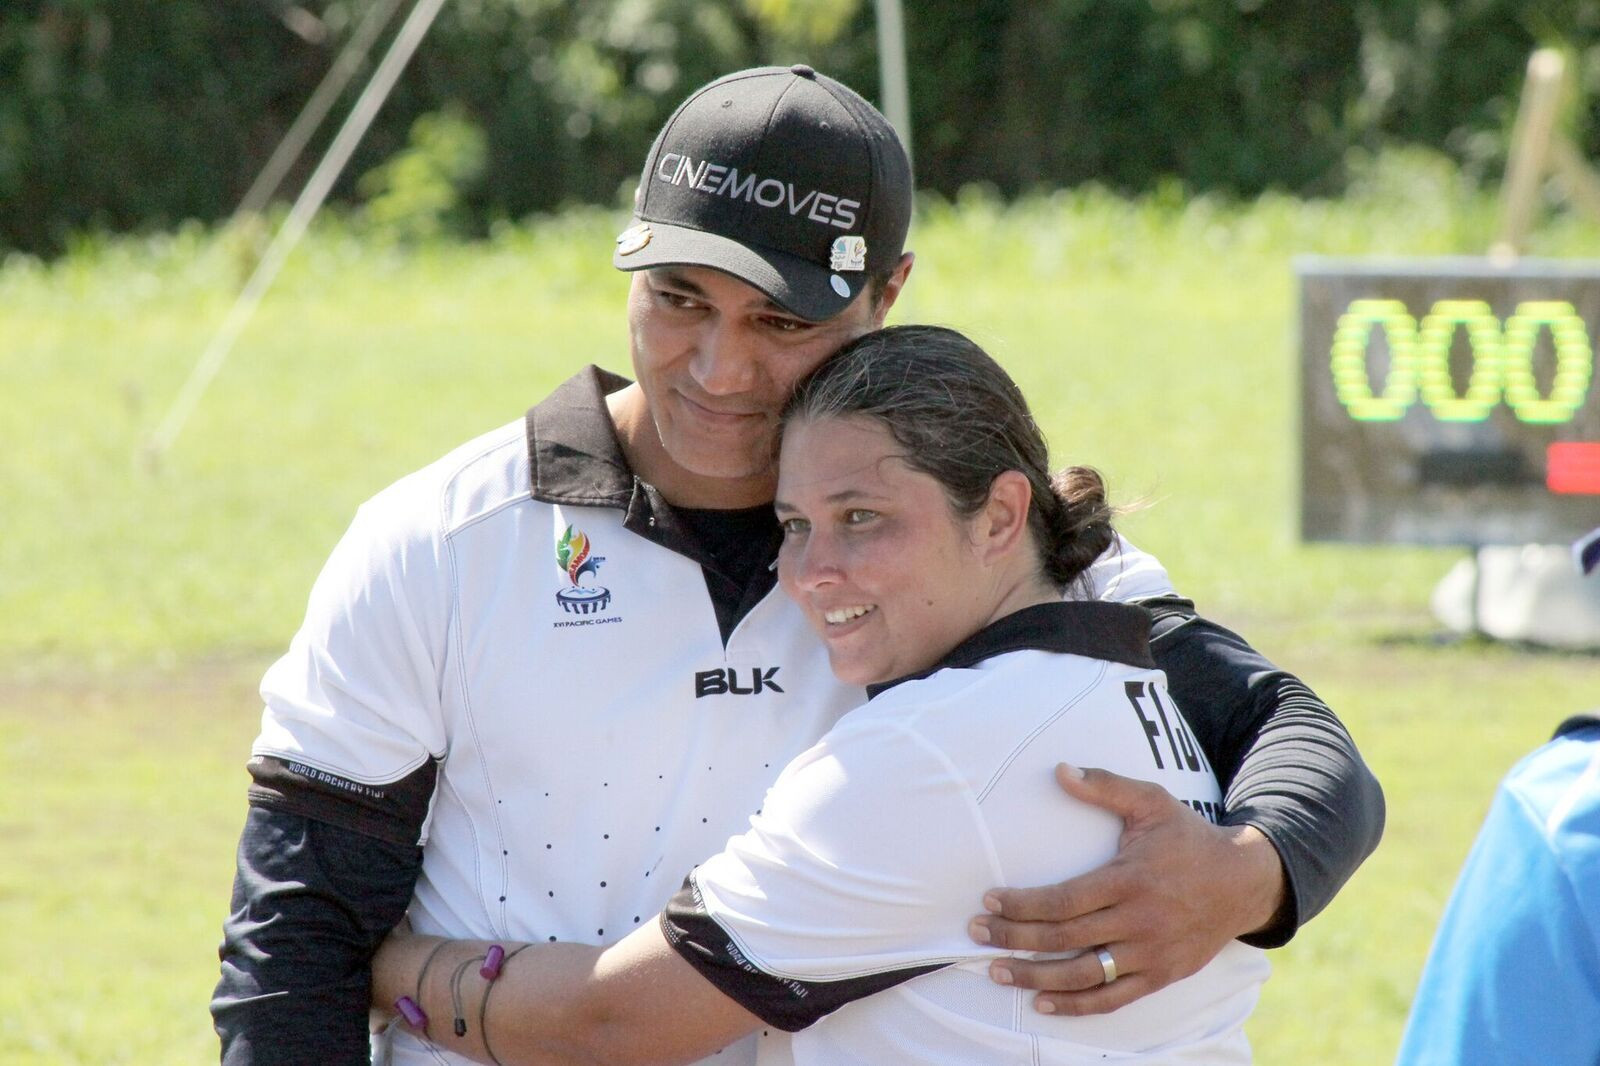 Fijian husband and wife win three medals in archery at 2019 Pacific Games